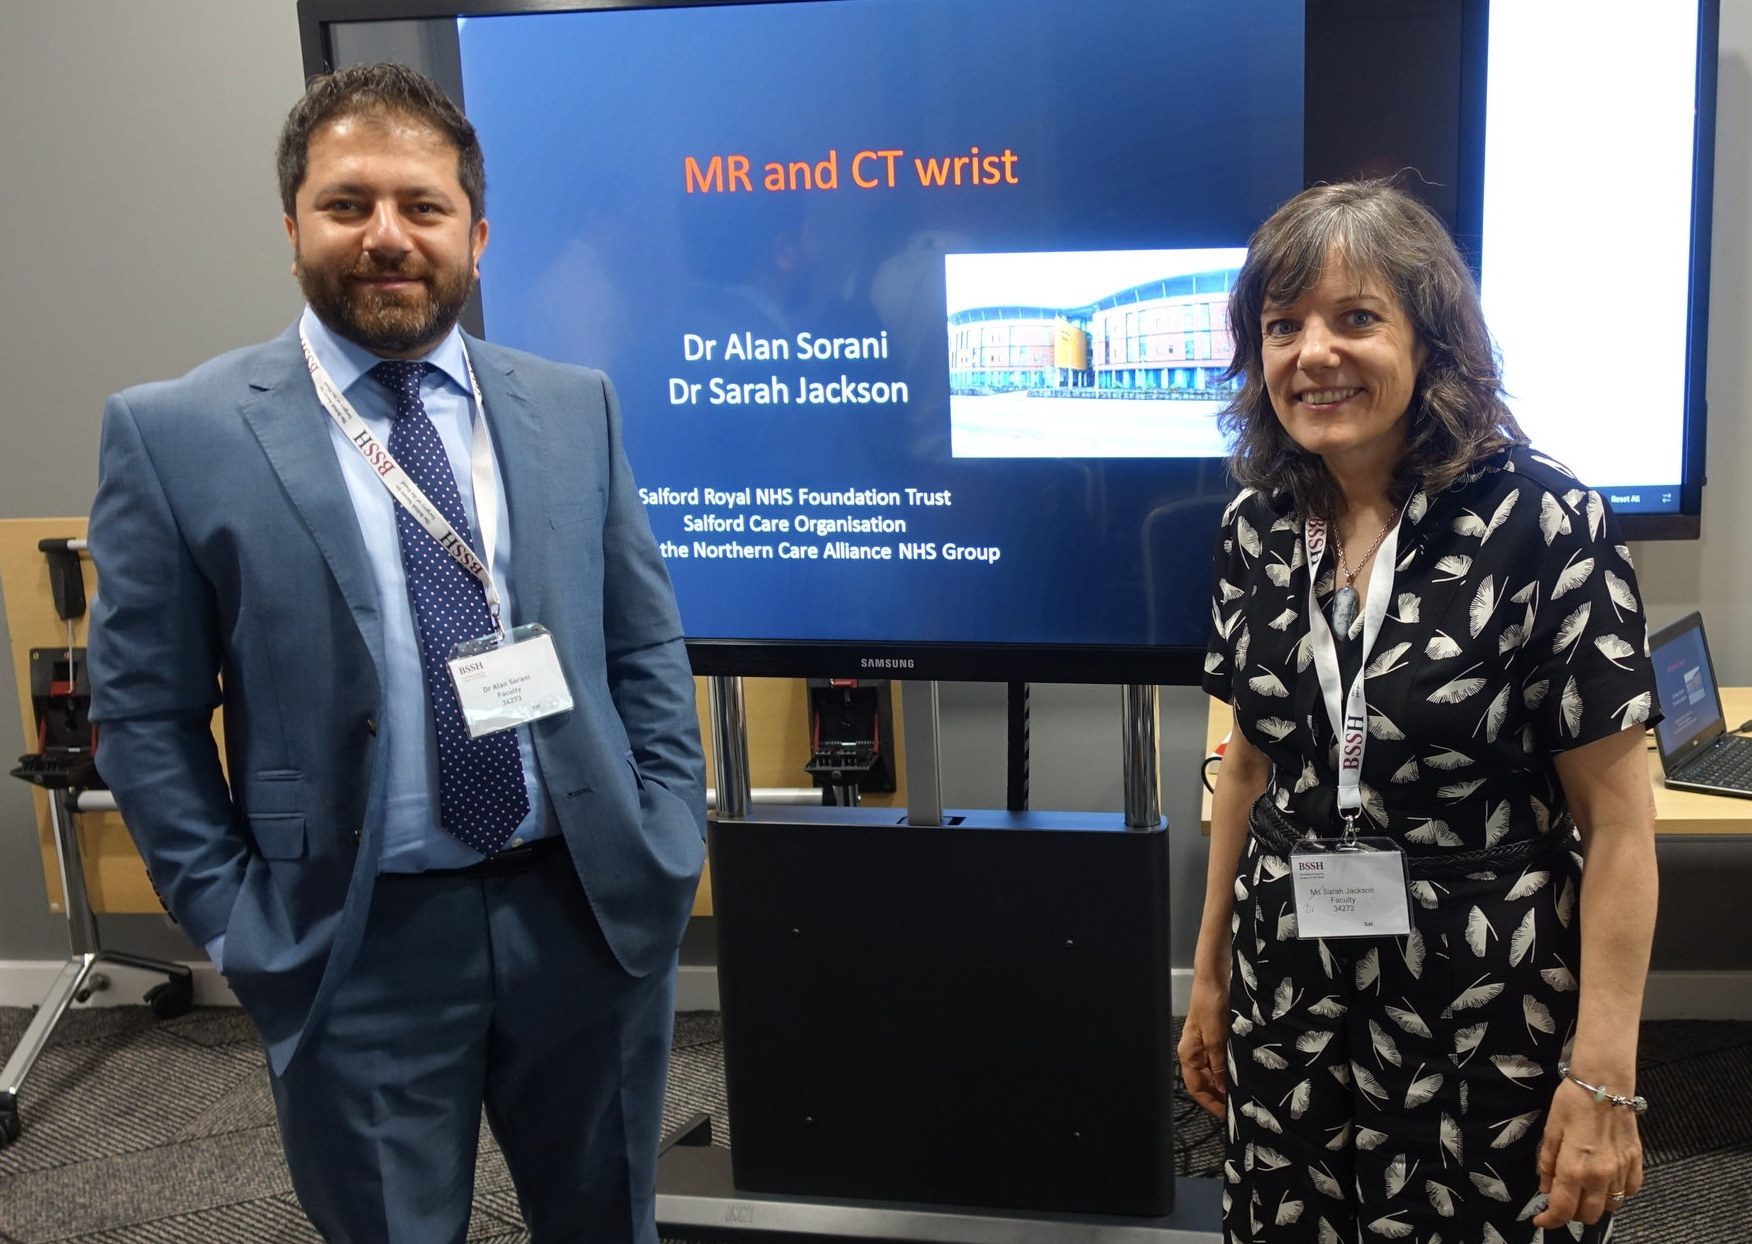 Dr Alan Sorani and Dr Sarah Jackson